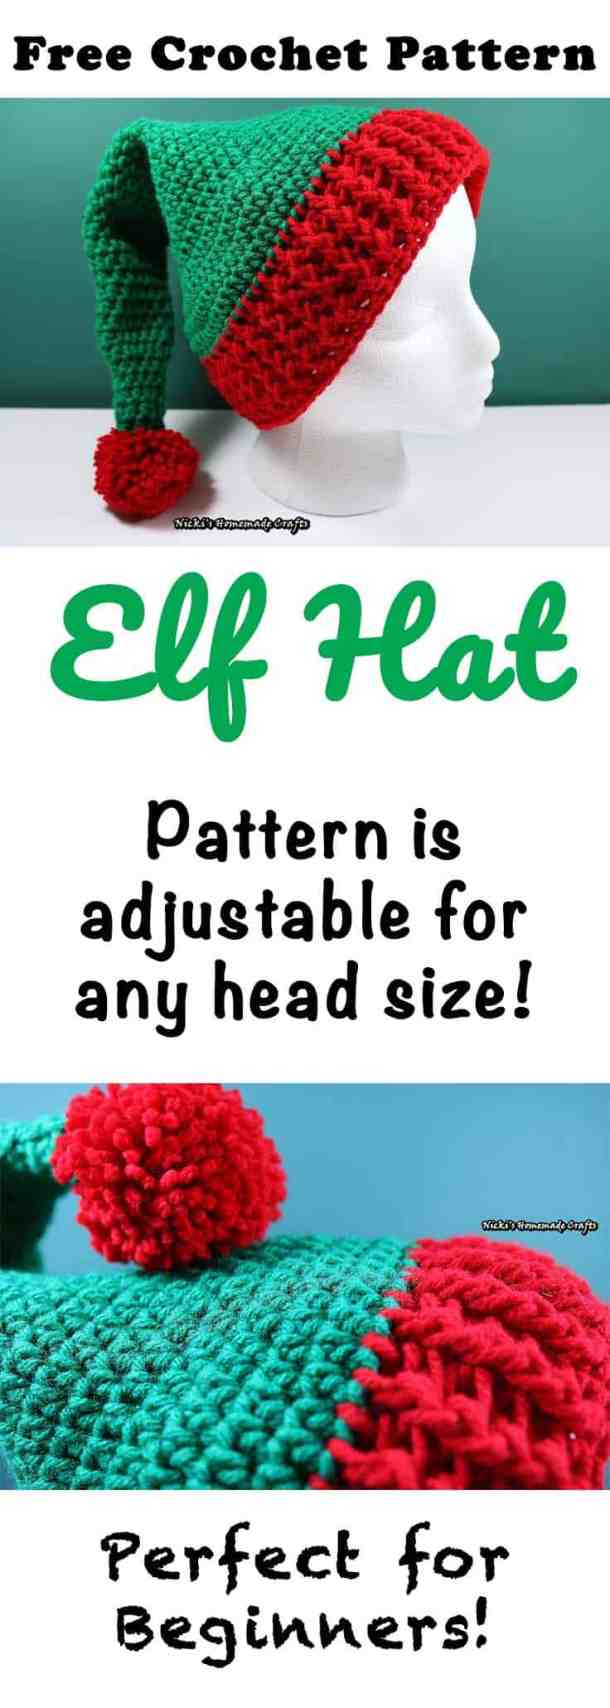 Elf Hat with Pom-pom - Free Crochet Pattern by Nicki's Homemade Crafts #crochet #elf #christmas #hat #beginner #easy